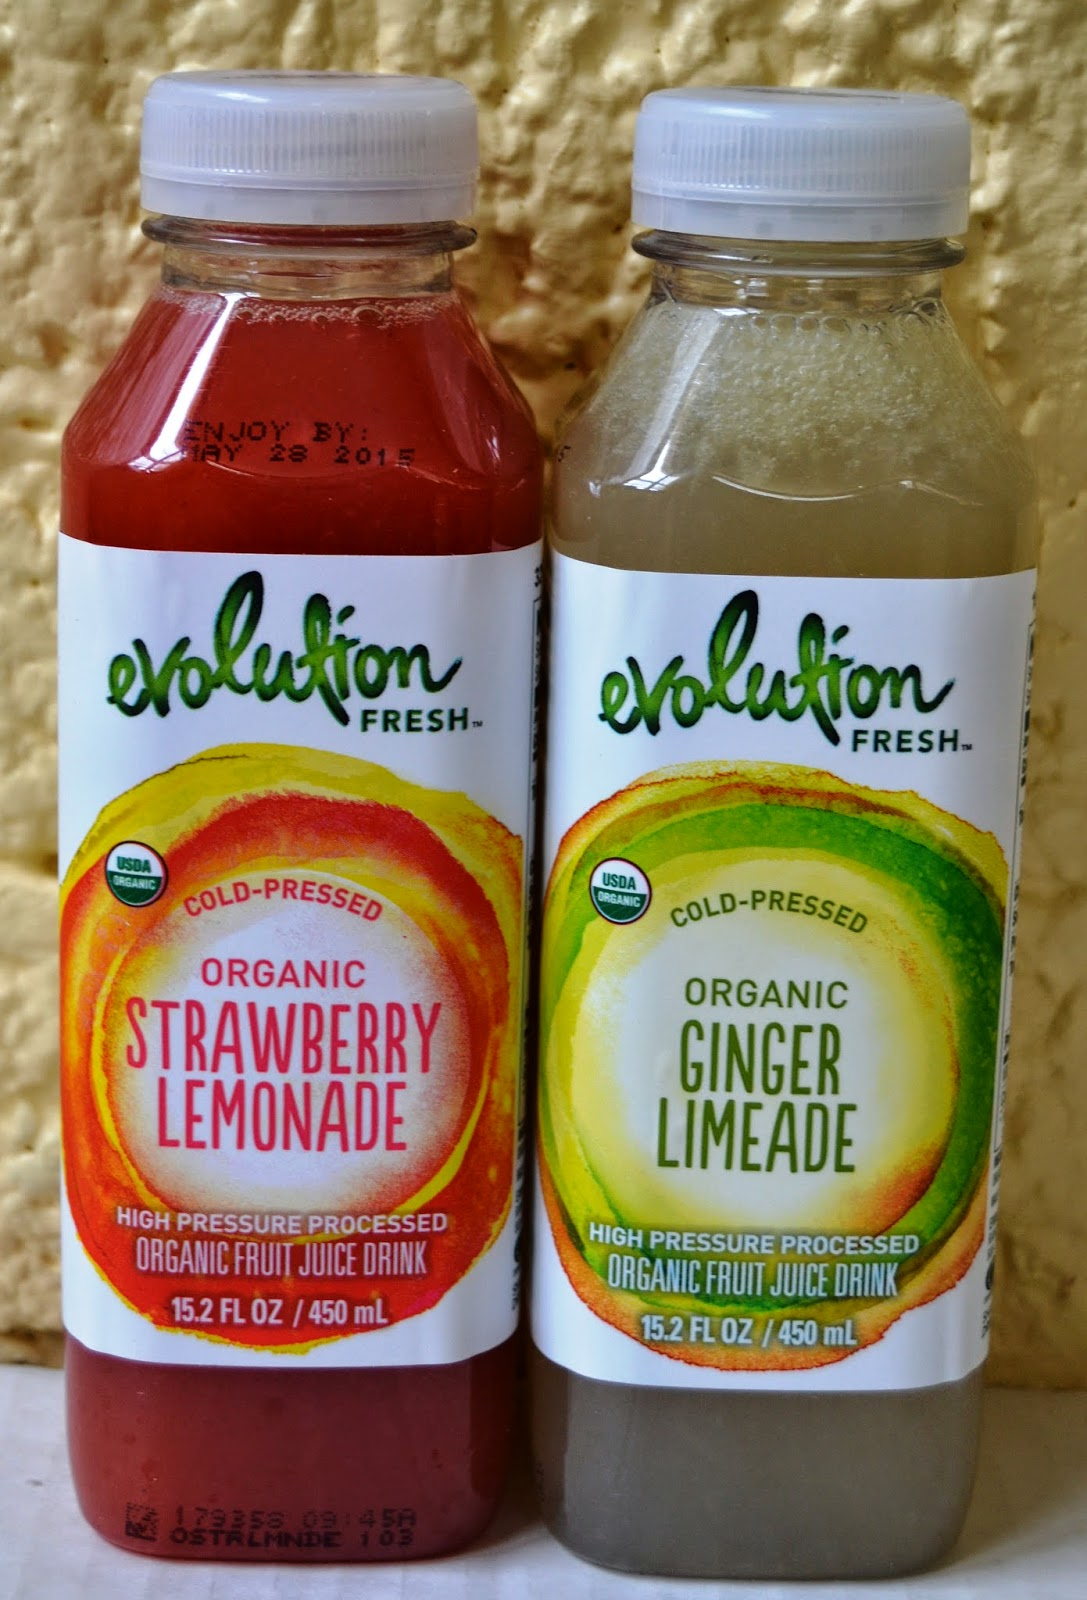 Evolution Fresh Juices I Have Reviewed In The Past But Had Never These Flavors Before Picked Them Up At My Local Whole Foods